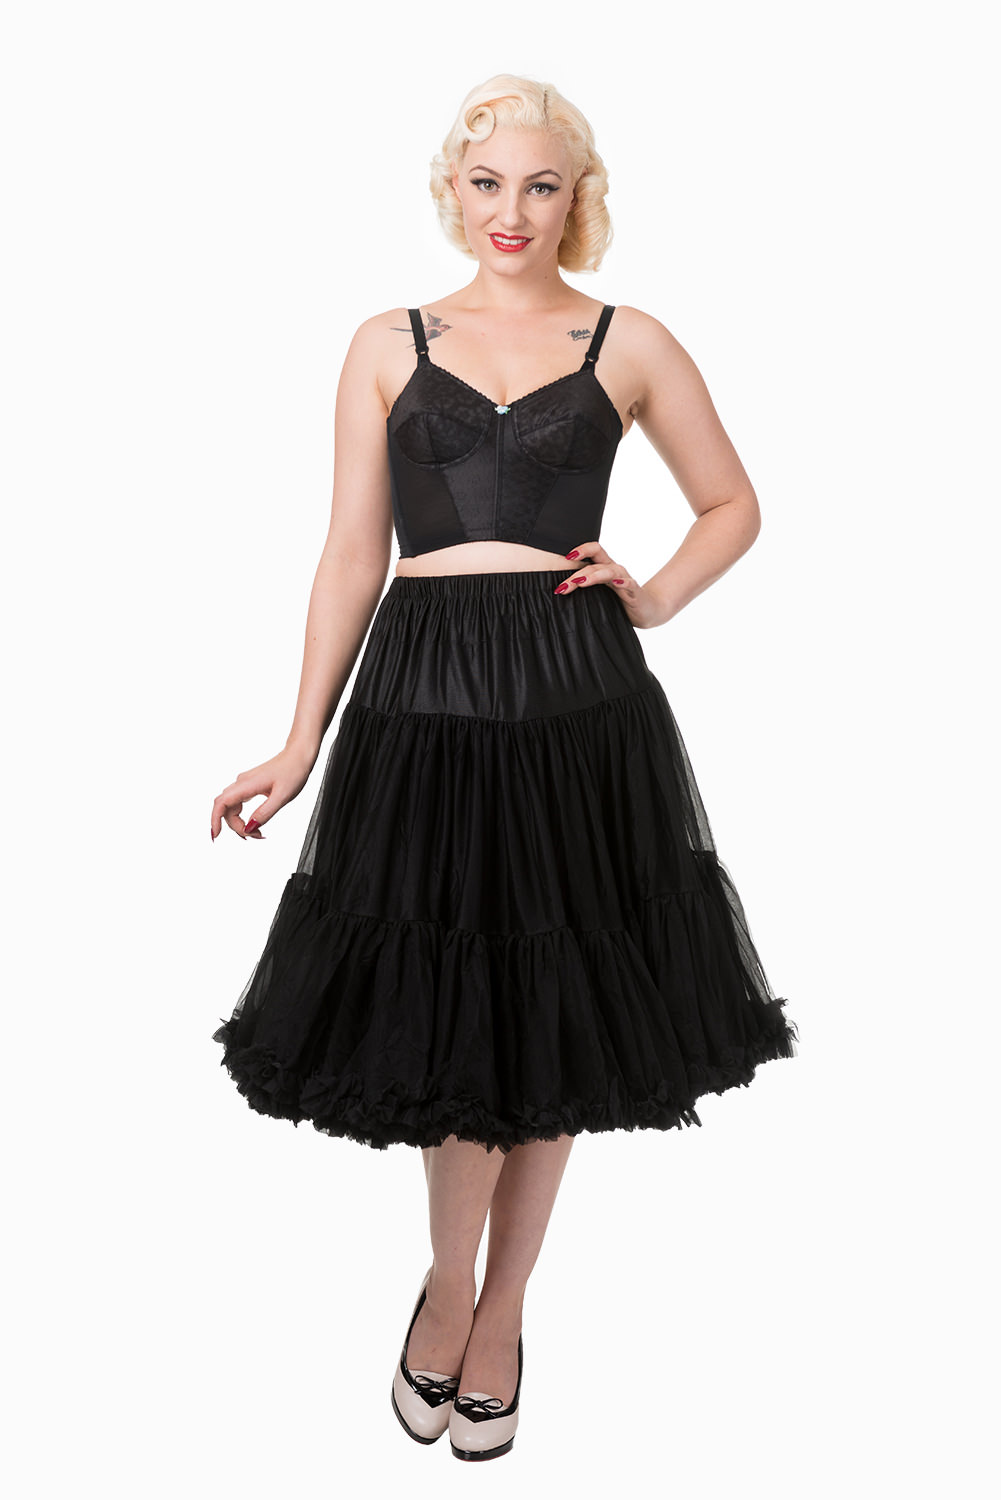 Lifeforms Petticoat in Black